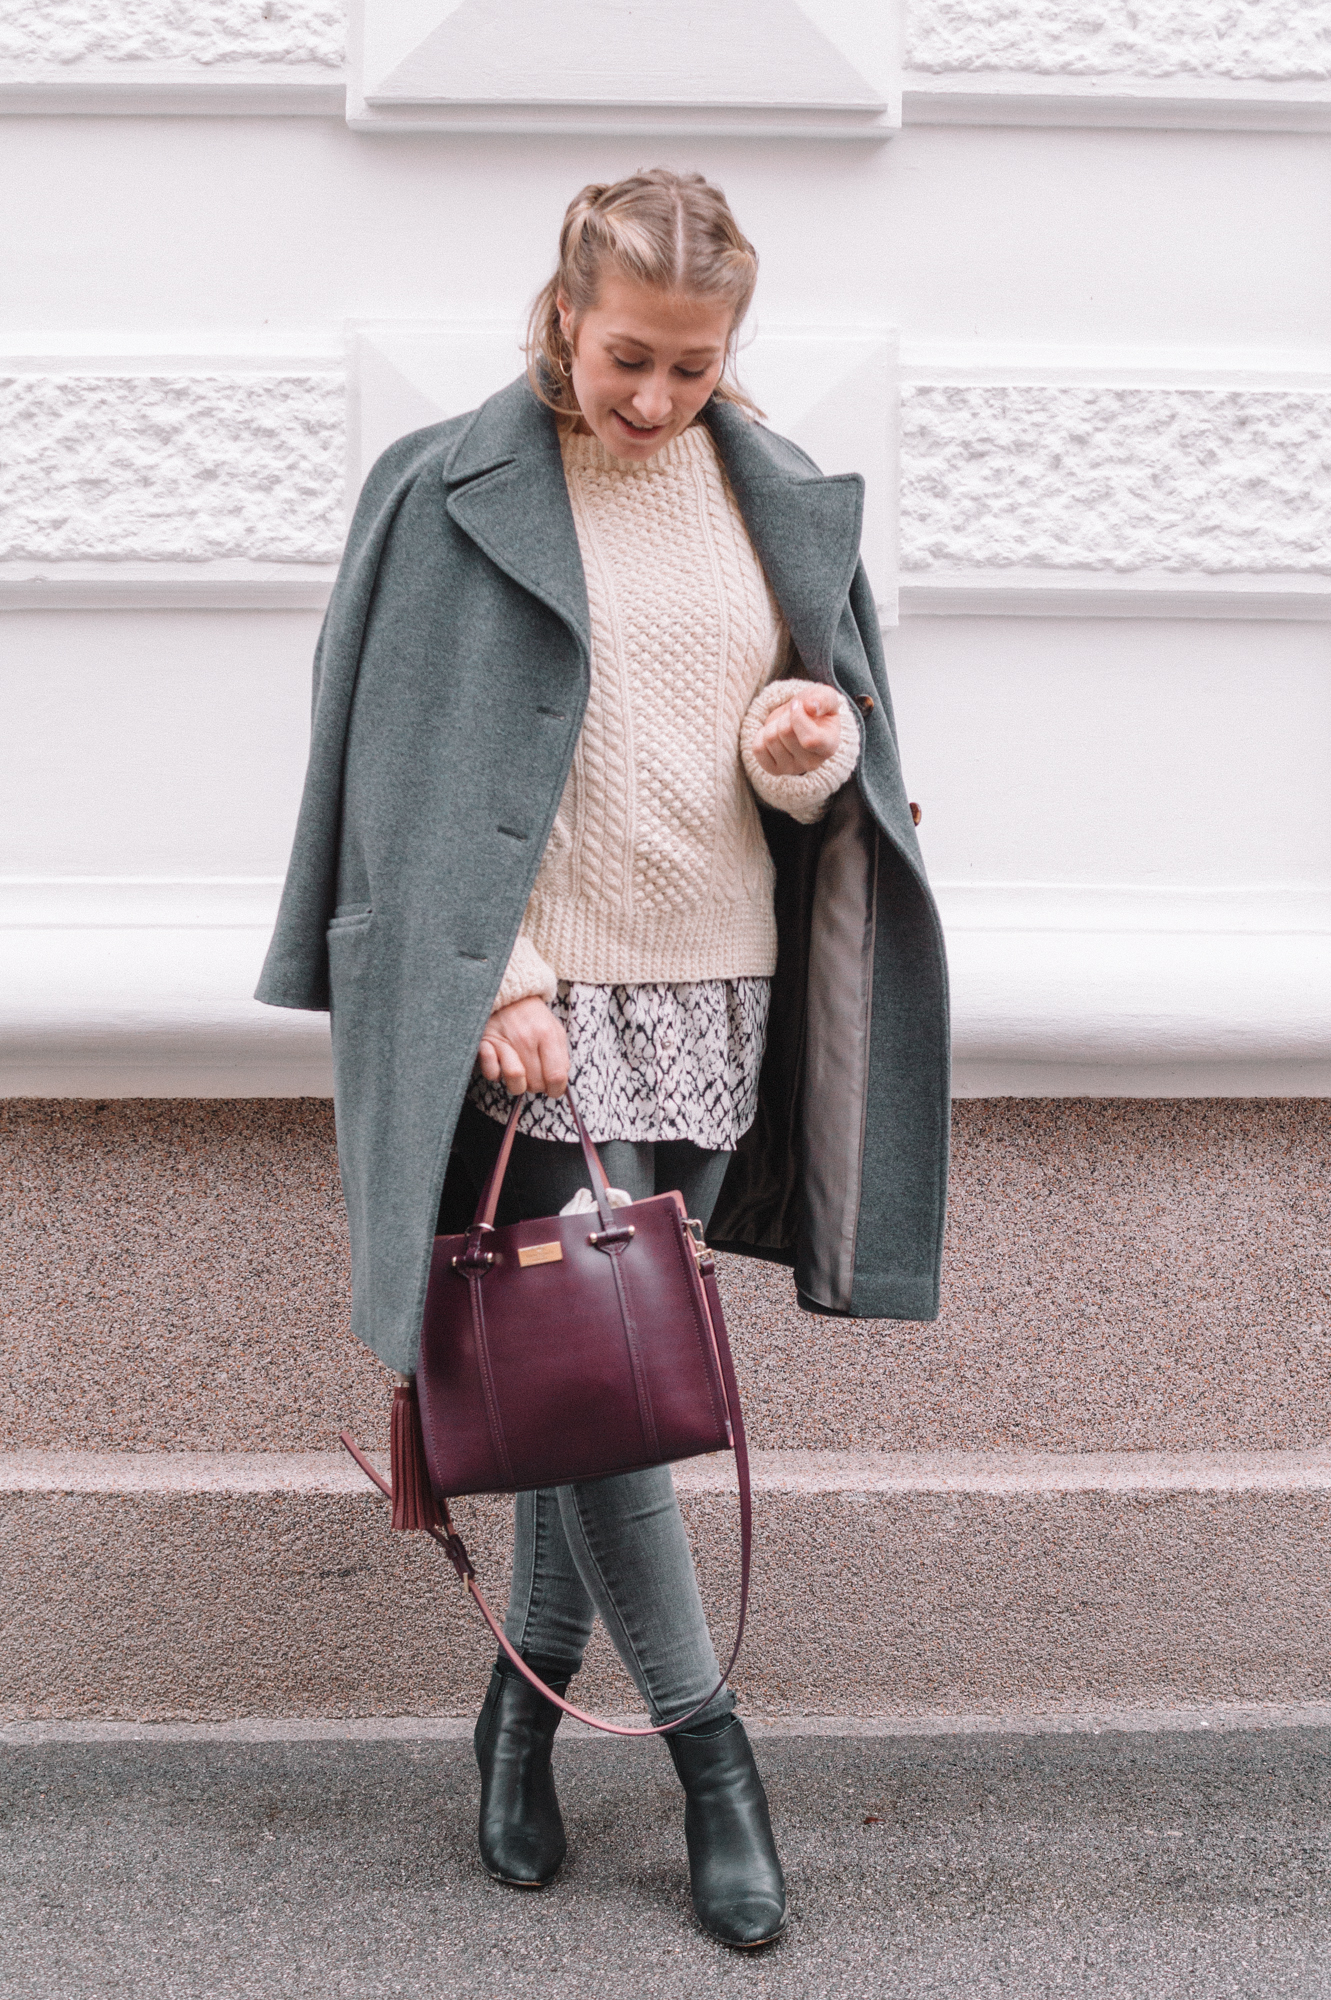 5 Simple Tricks for Dressing Stylish and Warm in Winter